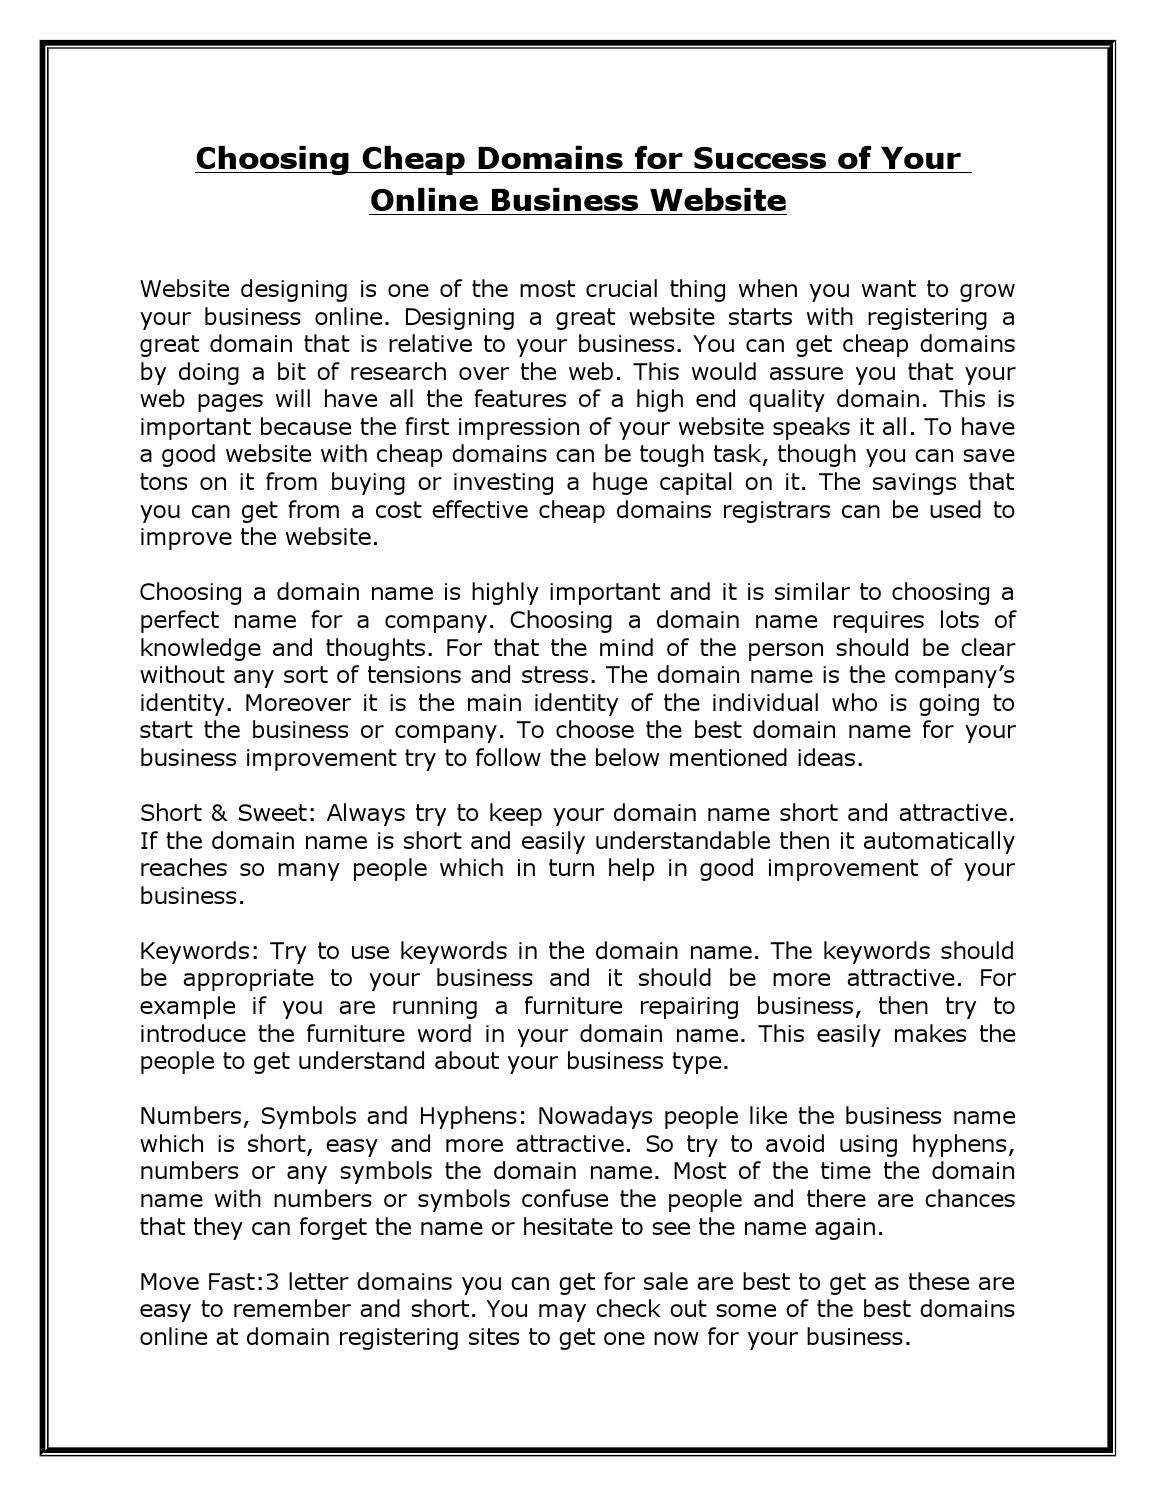 Choosing cheap domains for success of your online business website by philipwall - issuu